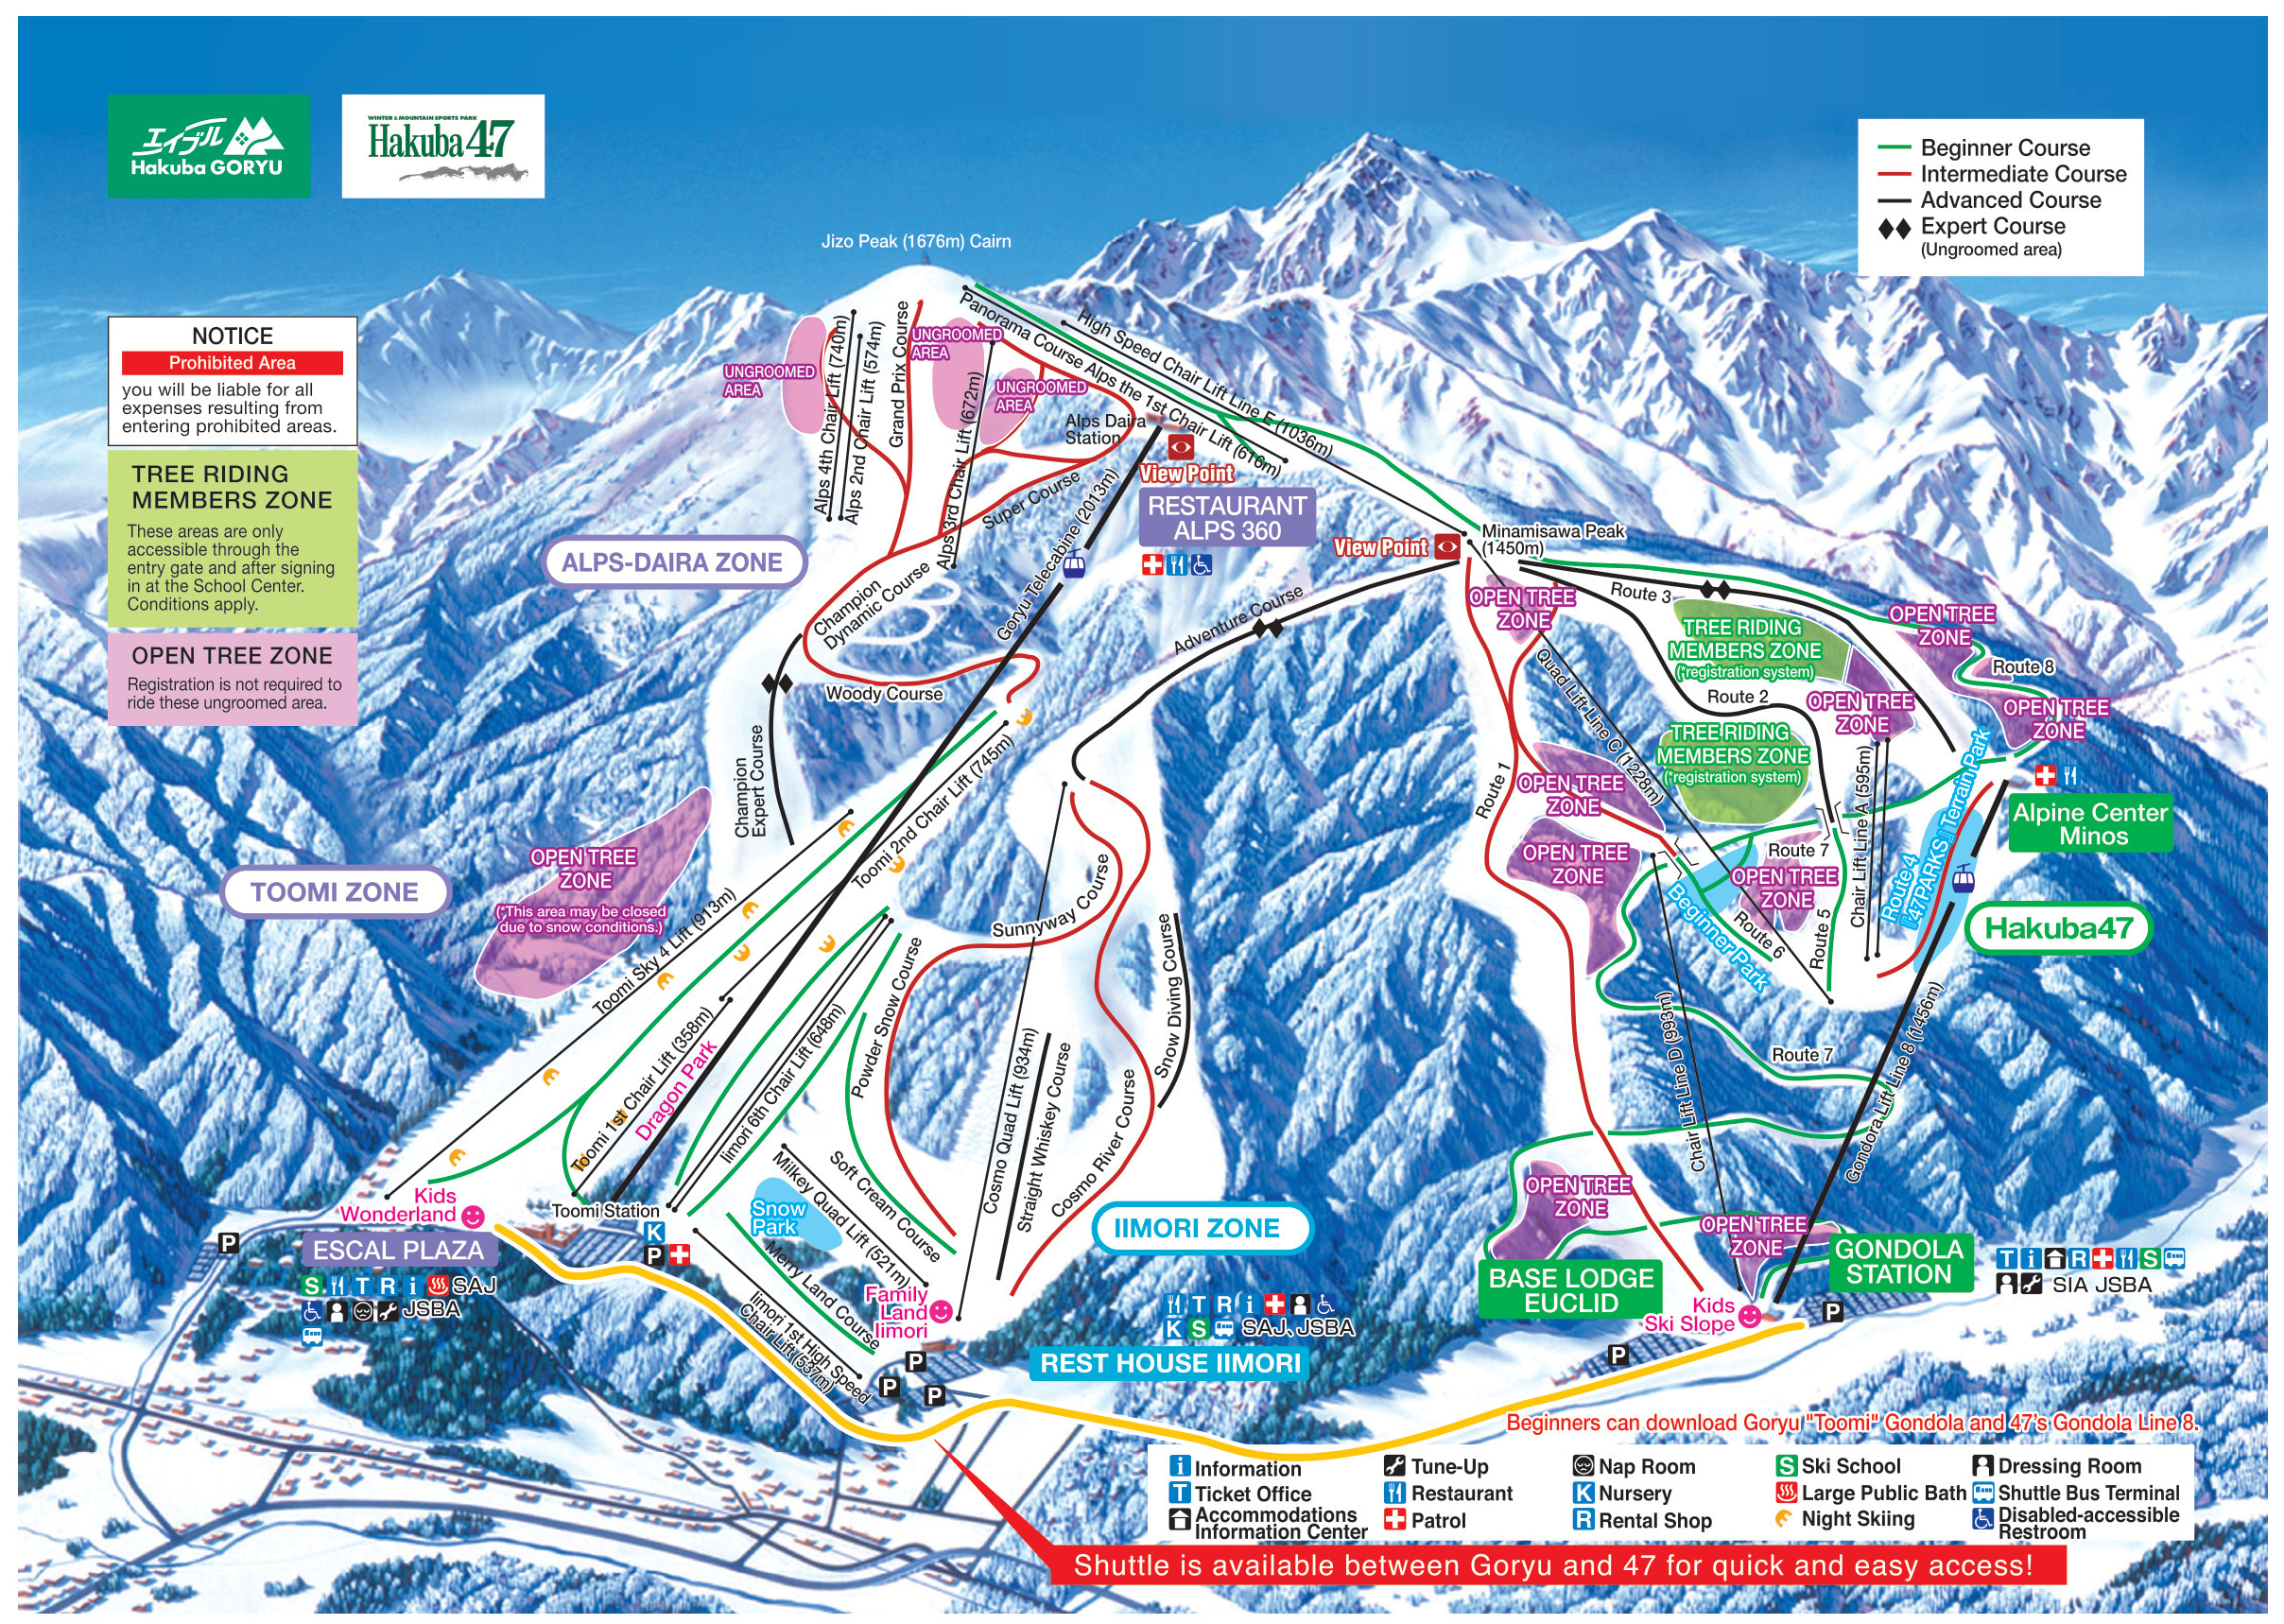 Hakuba 47 Piste / Trail Map